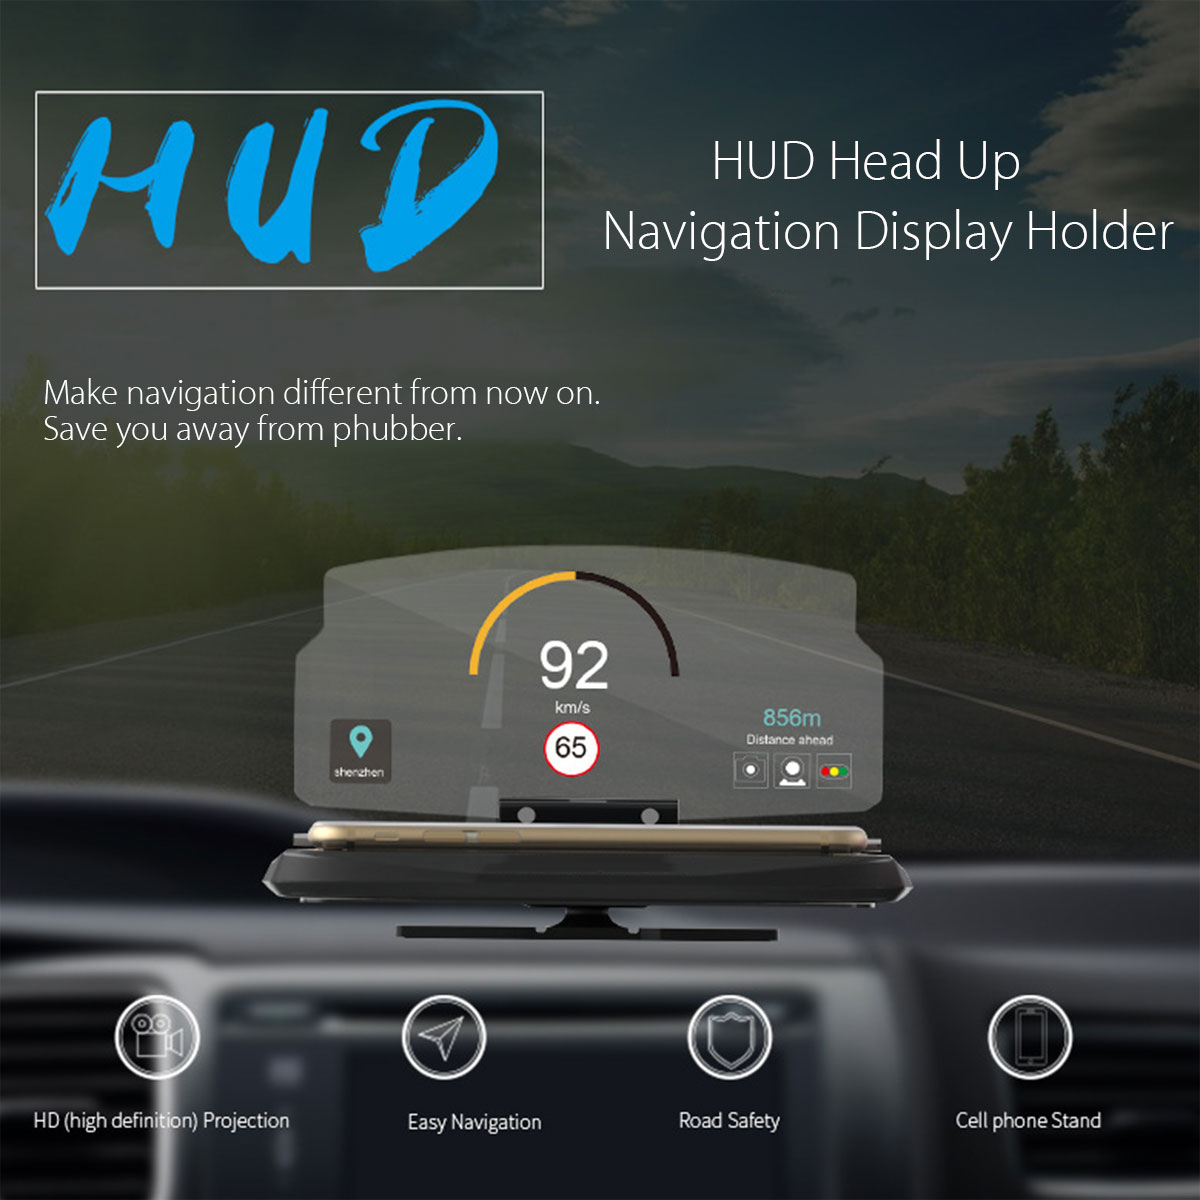 Universal Mobile Phone Car Holder Windscreen Projector HUD Head Up Display 6.5 Inch For iPhone/Samsung GPS new arrival smart cell phone holder mount head up display car hud phone gps navigation wireless charger stand for iphone 8 plus